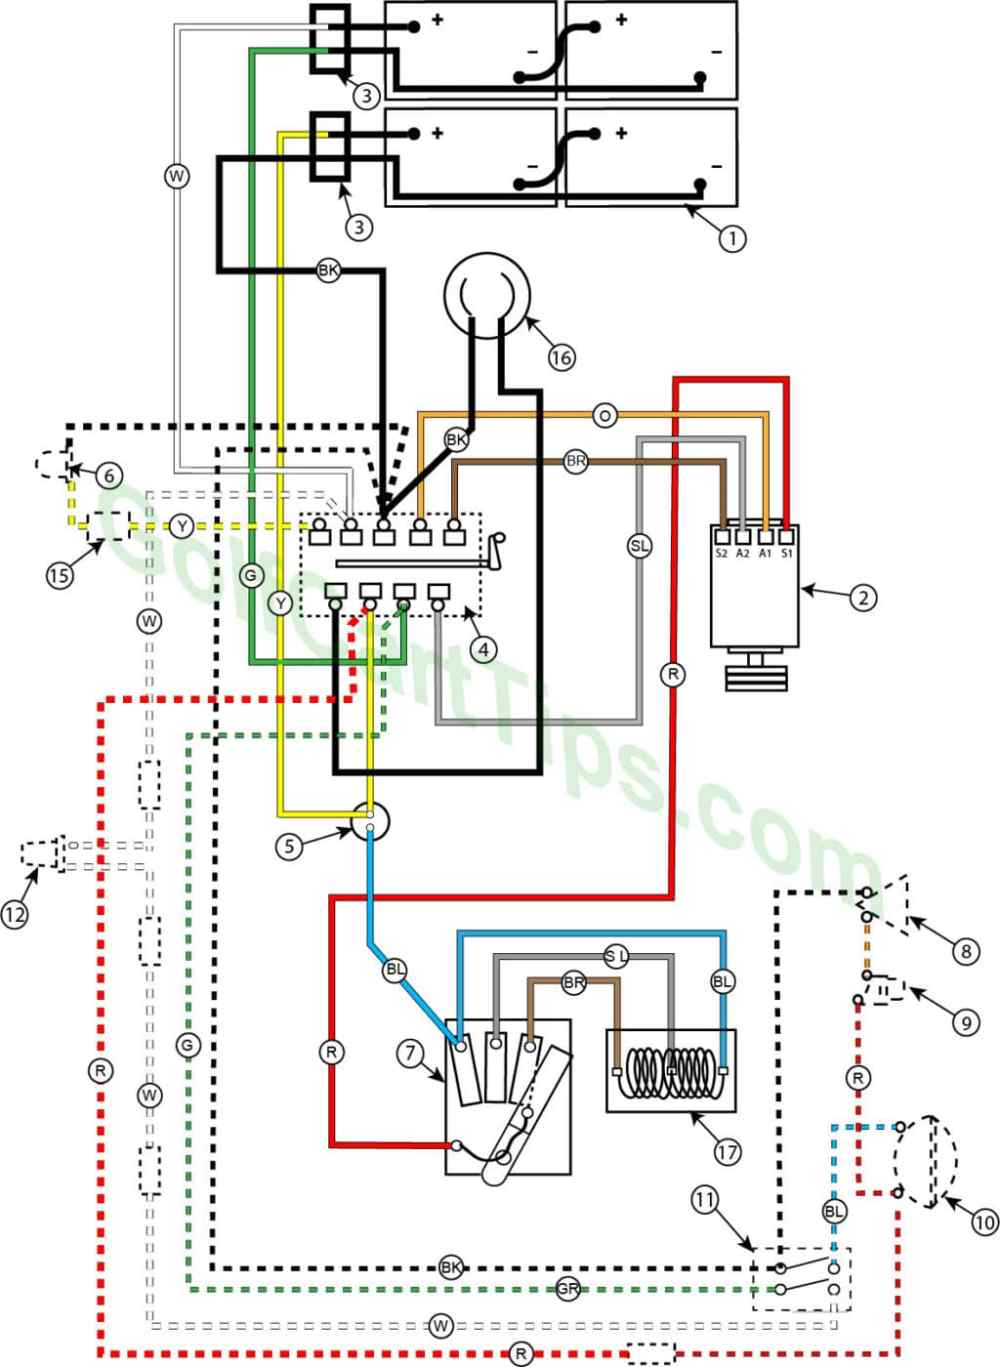 medium resolution of wiring diagram for 1957 model 732 42 24v golfster and 731 44 24v industrial